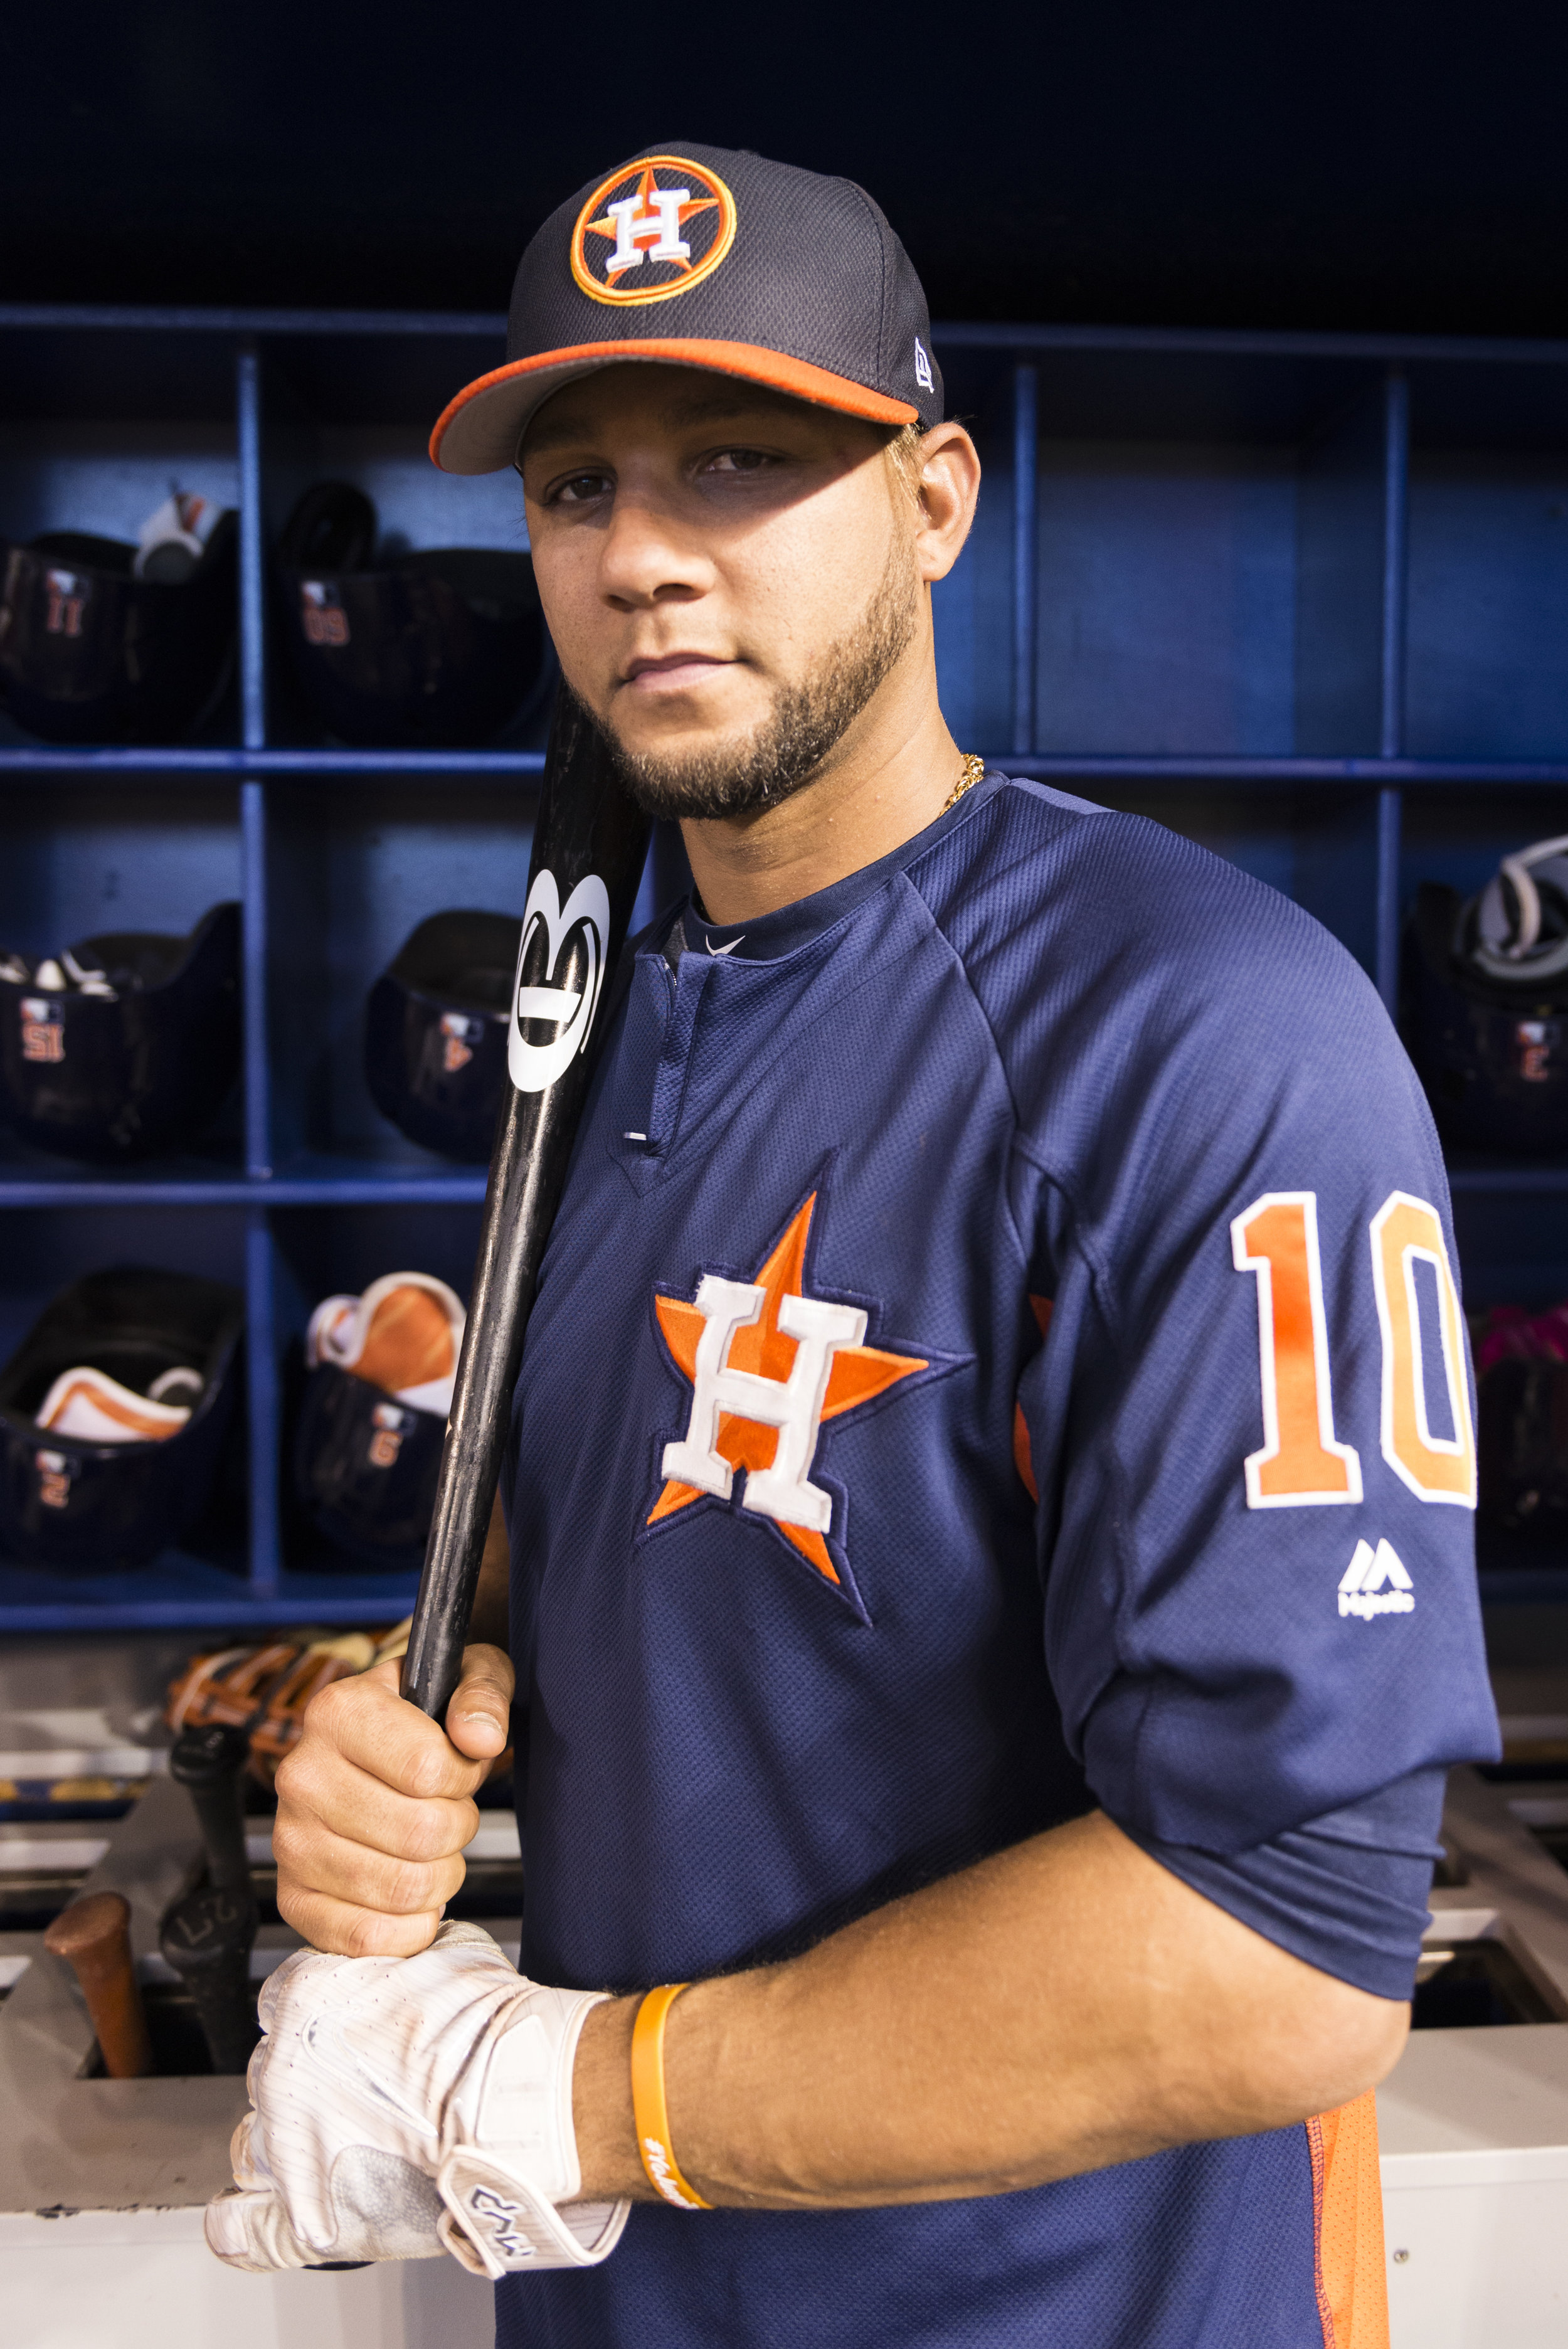 Yulieski Gurriel, Houston Astros